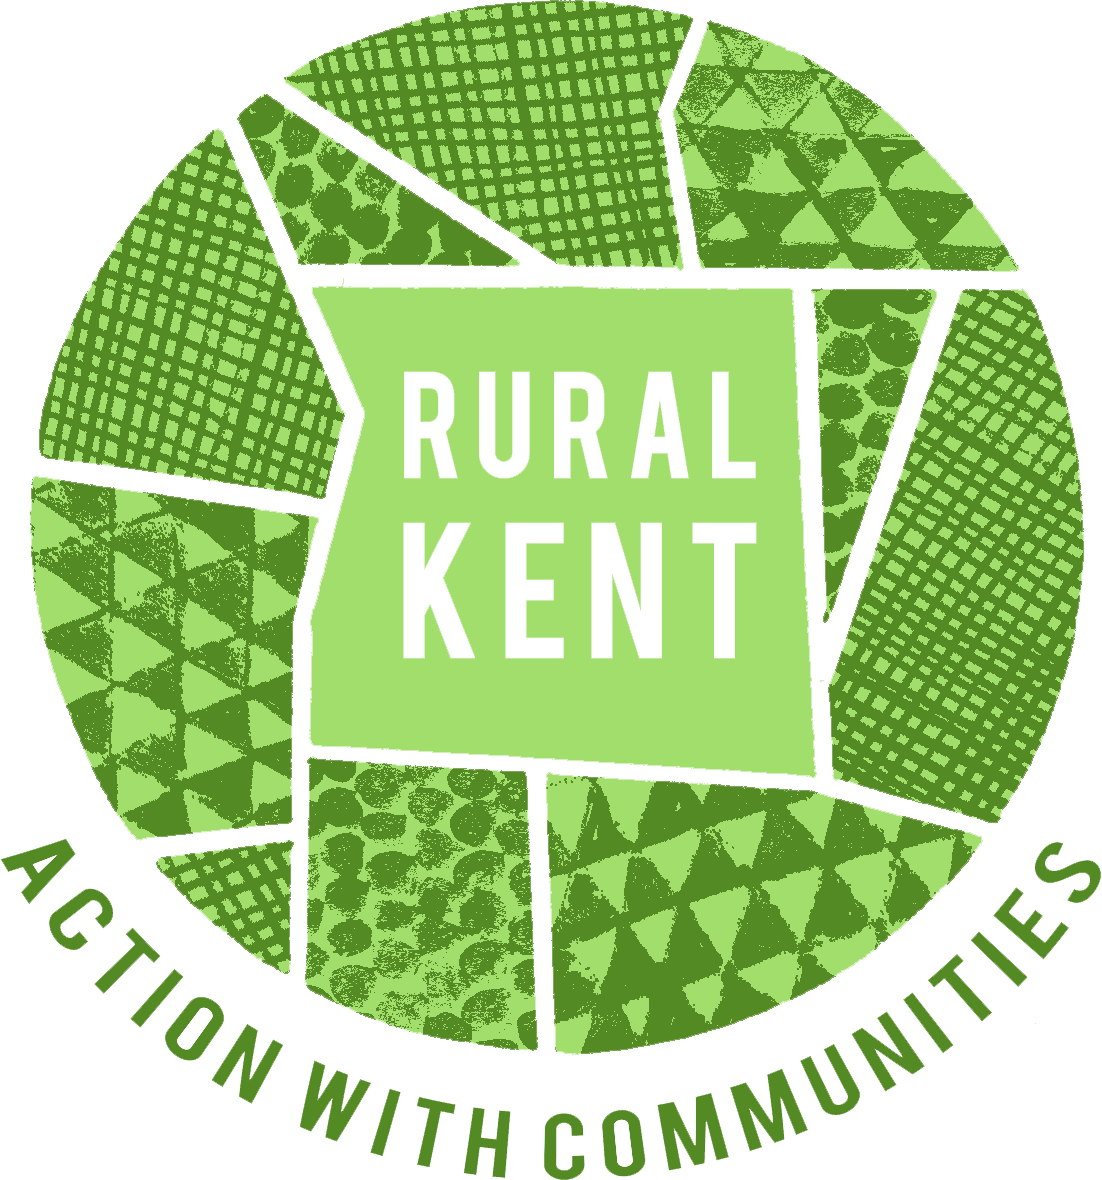 Rural Kent - Action in Communities